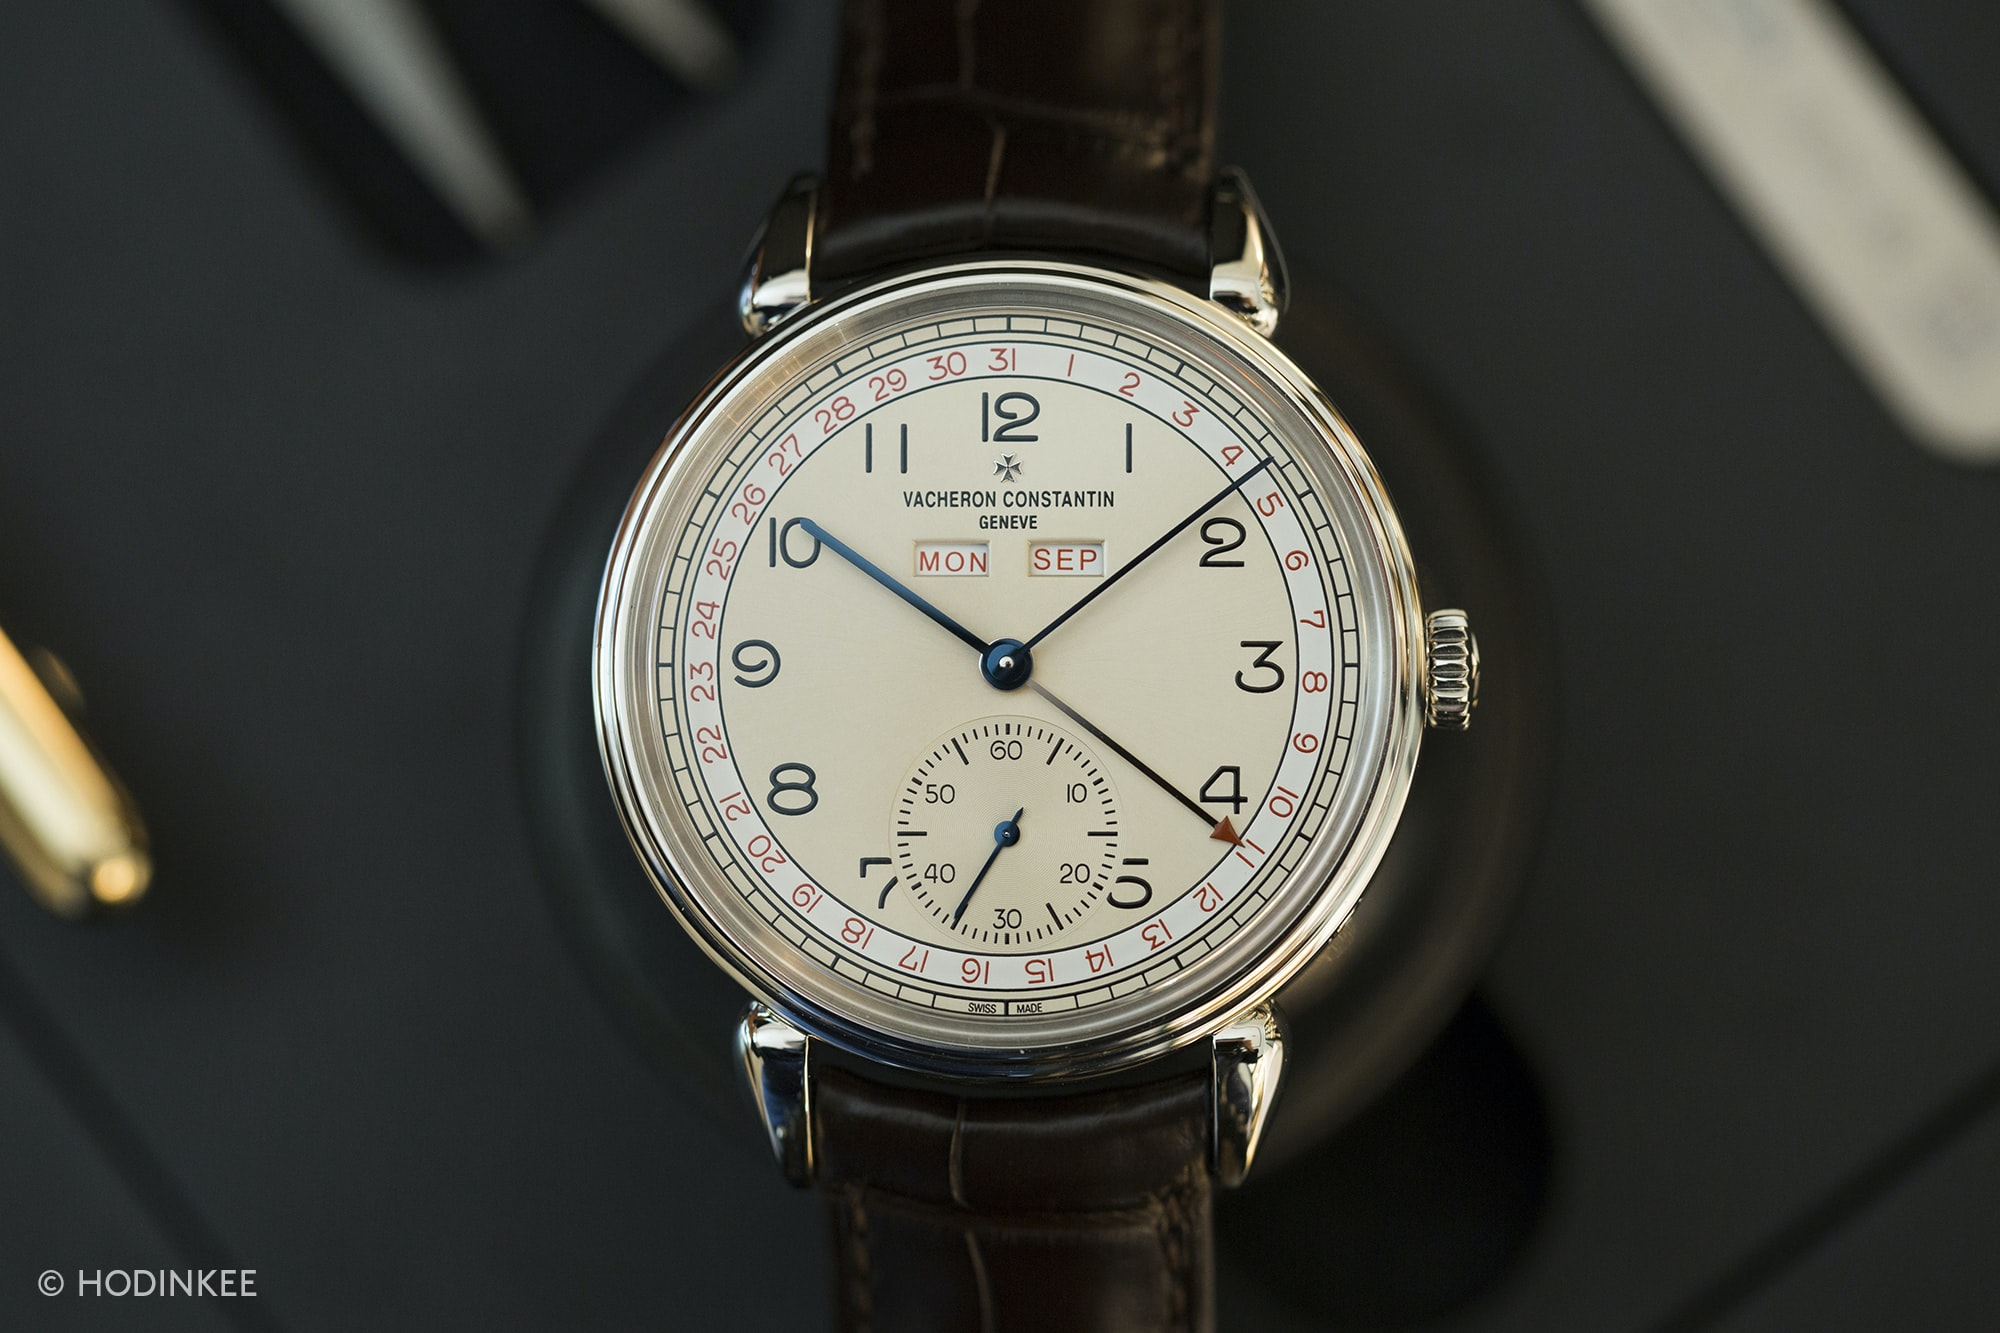 vacheron historiques calendrier 1942  Introducing: The New Vacheron Constantin Historiques: Triple Calendrier 1942 And 1948, And American 1921 Small (Exclusive Live Pics) 3H0A2912 copy